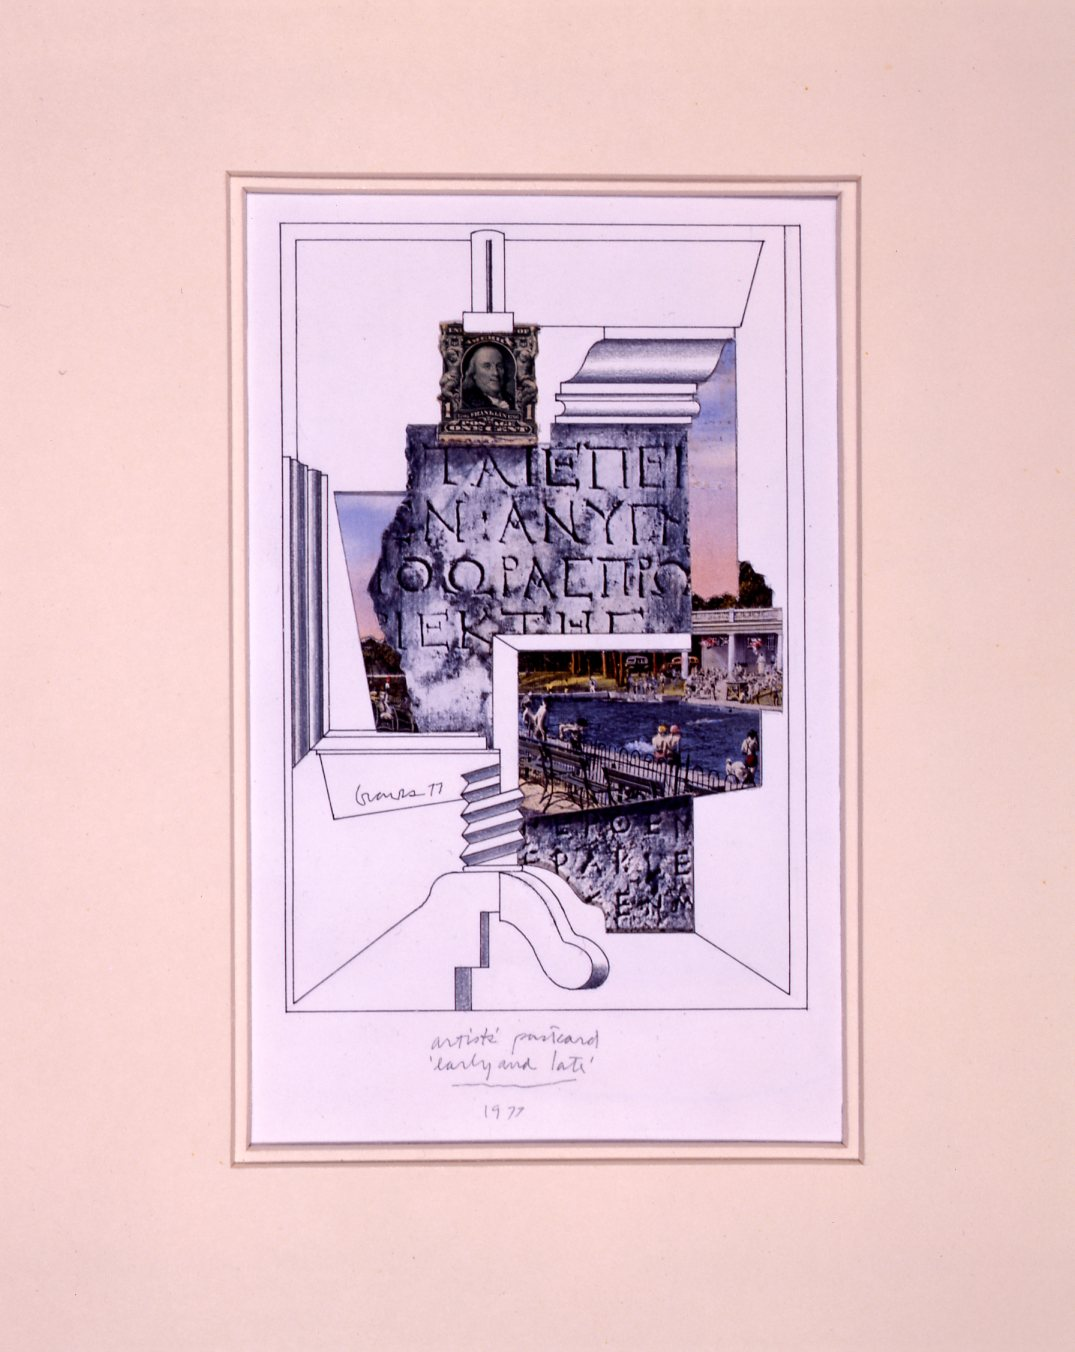 Artists' postcard 'early and late': Michael Graves